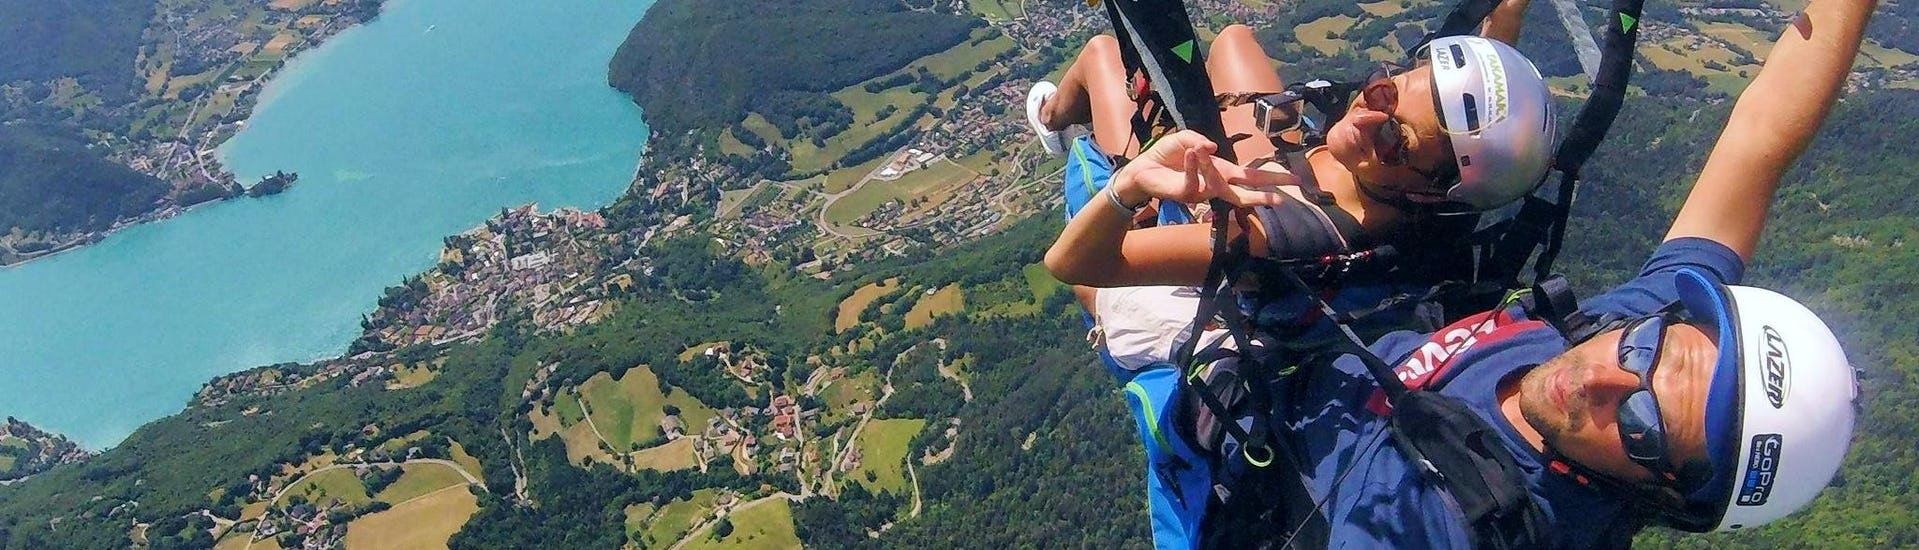 tandem-paragliding-acro-fly-lake-annecy-takamaka-annecy-hero